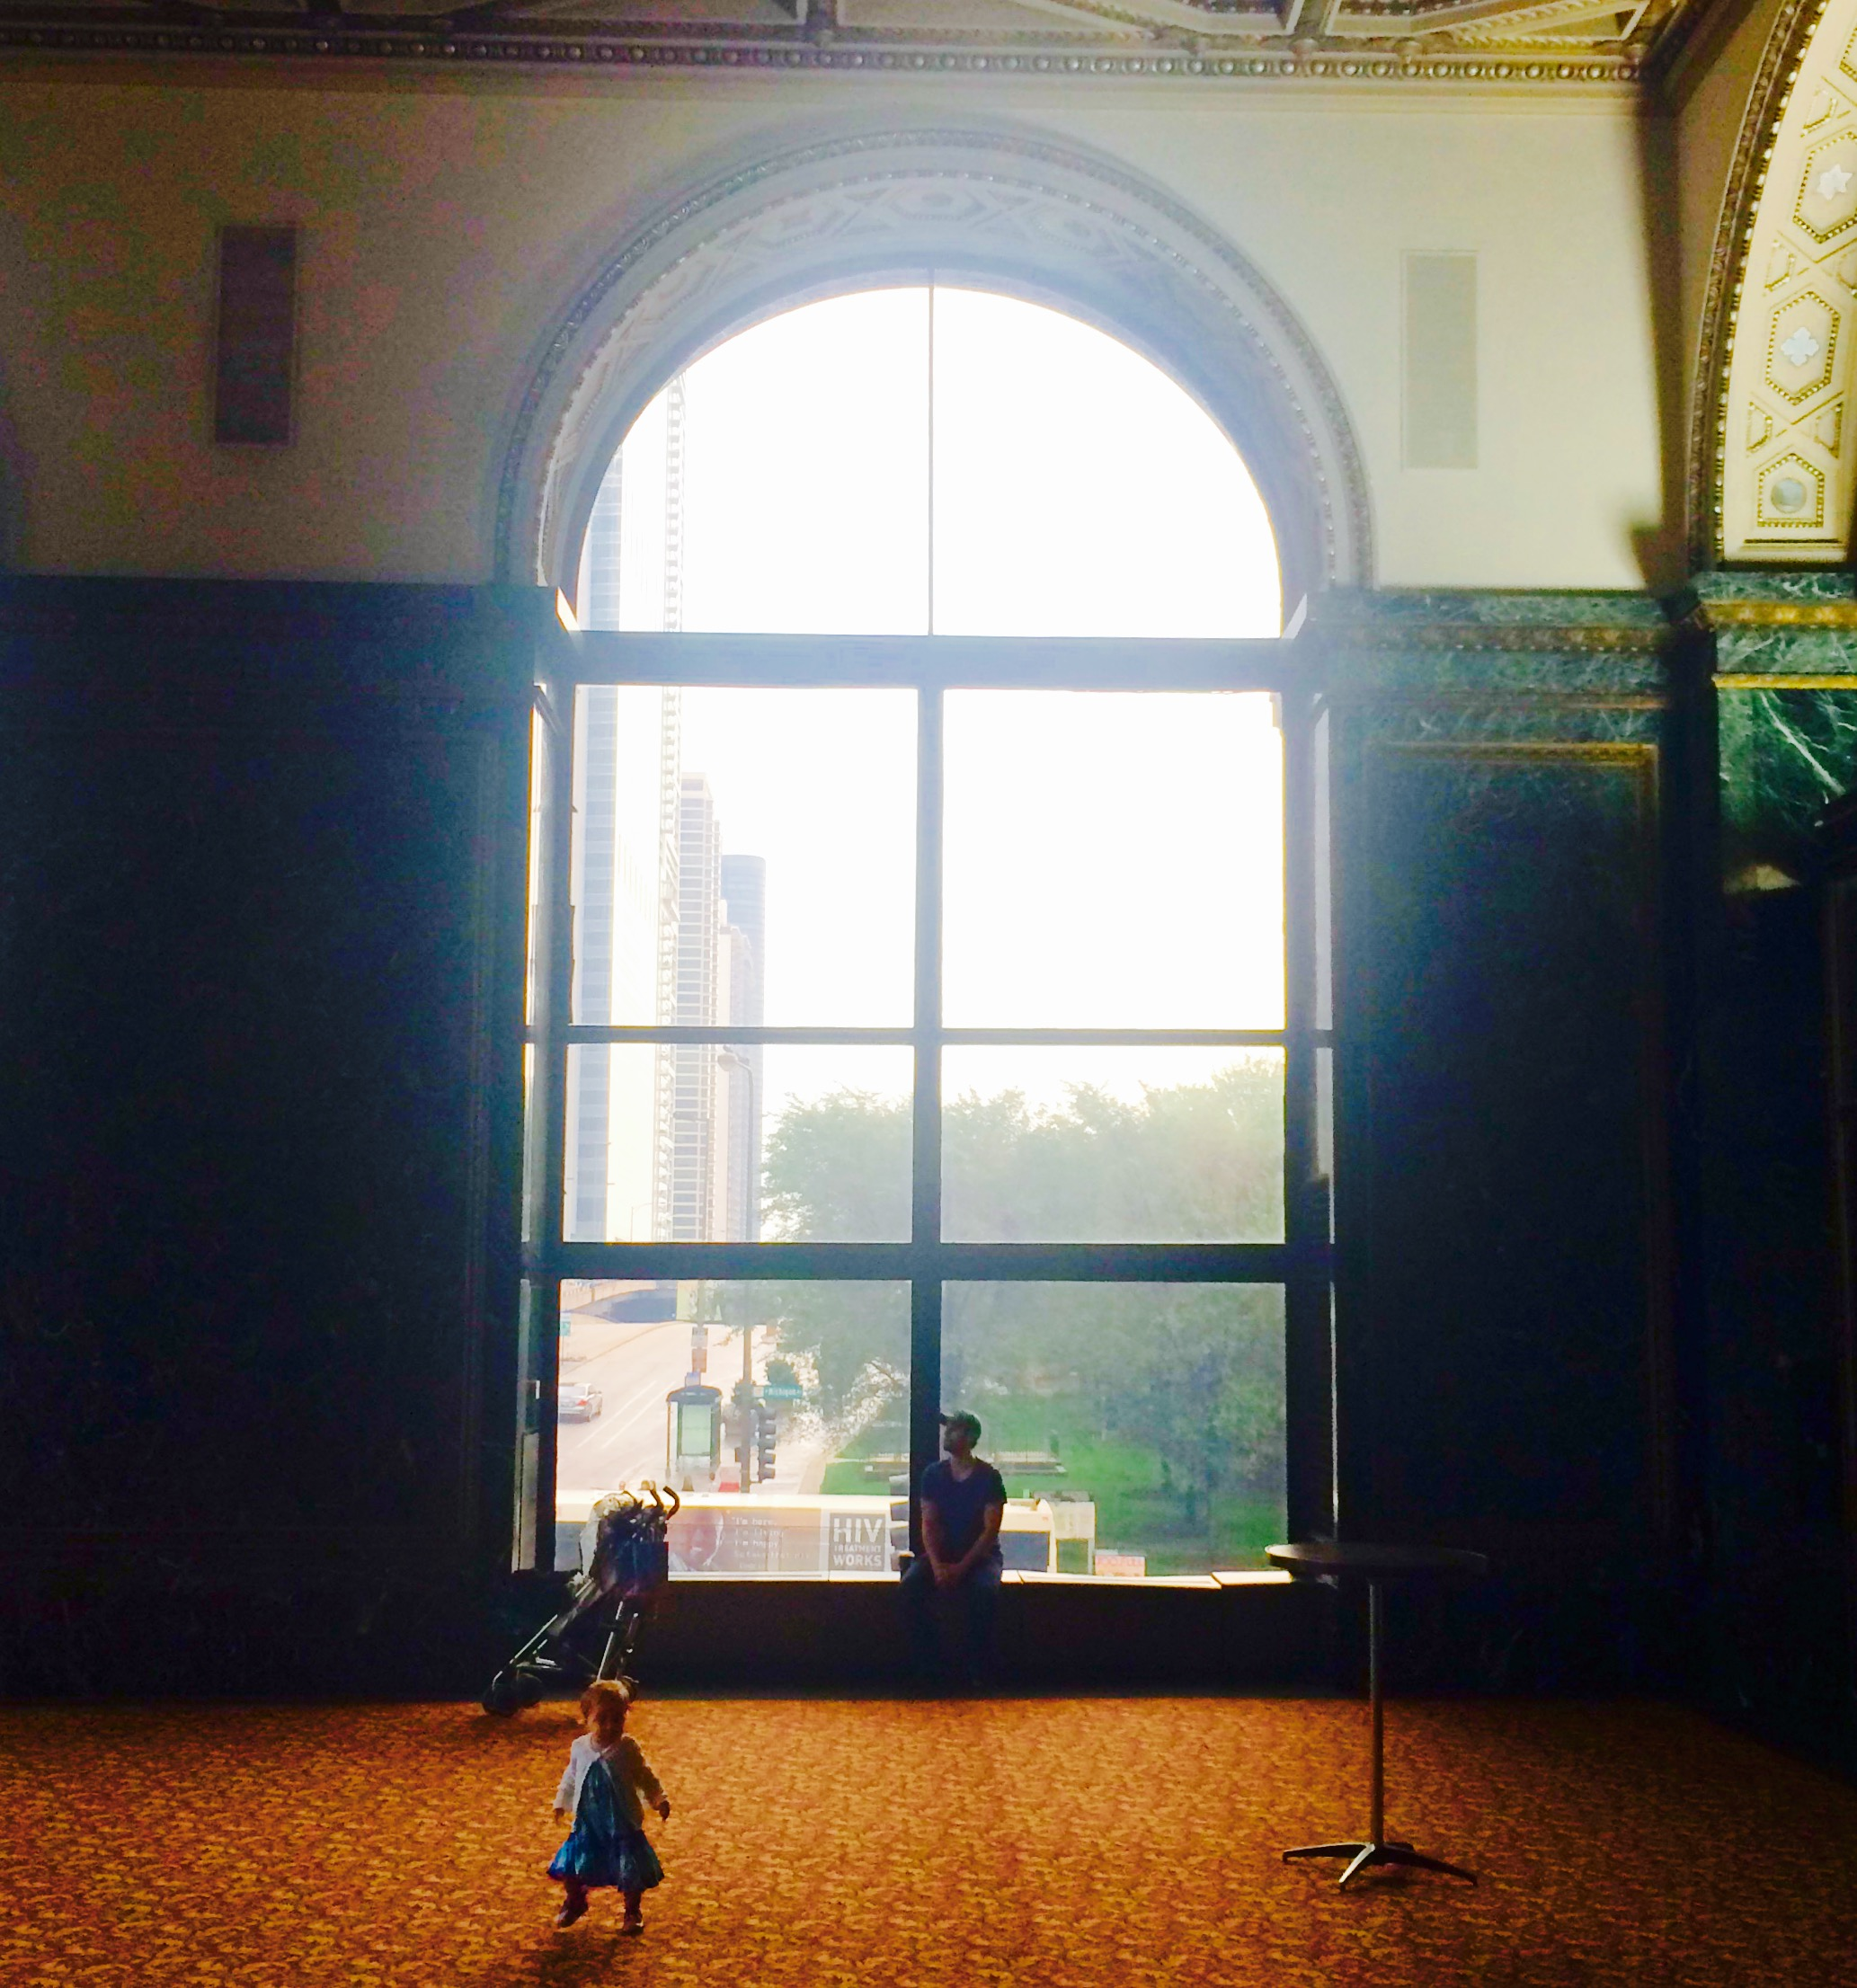 :: musings and wanderings at the chicago cultural center ::